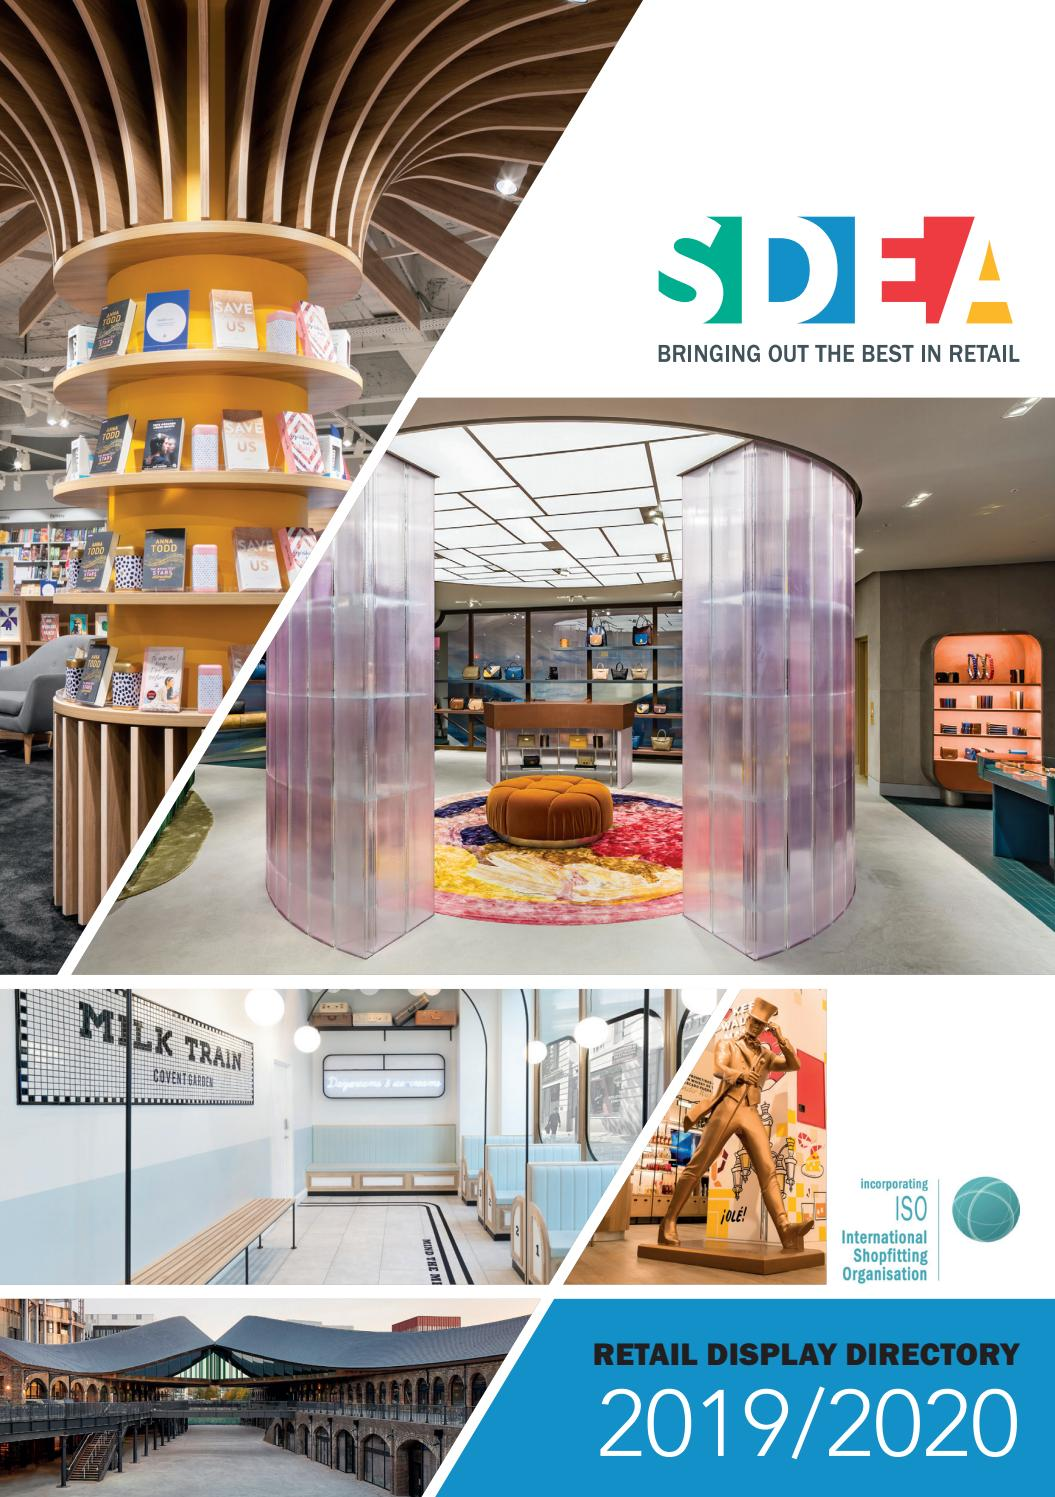 Sdea Retail Display Directory By Retail Focus Issuu